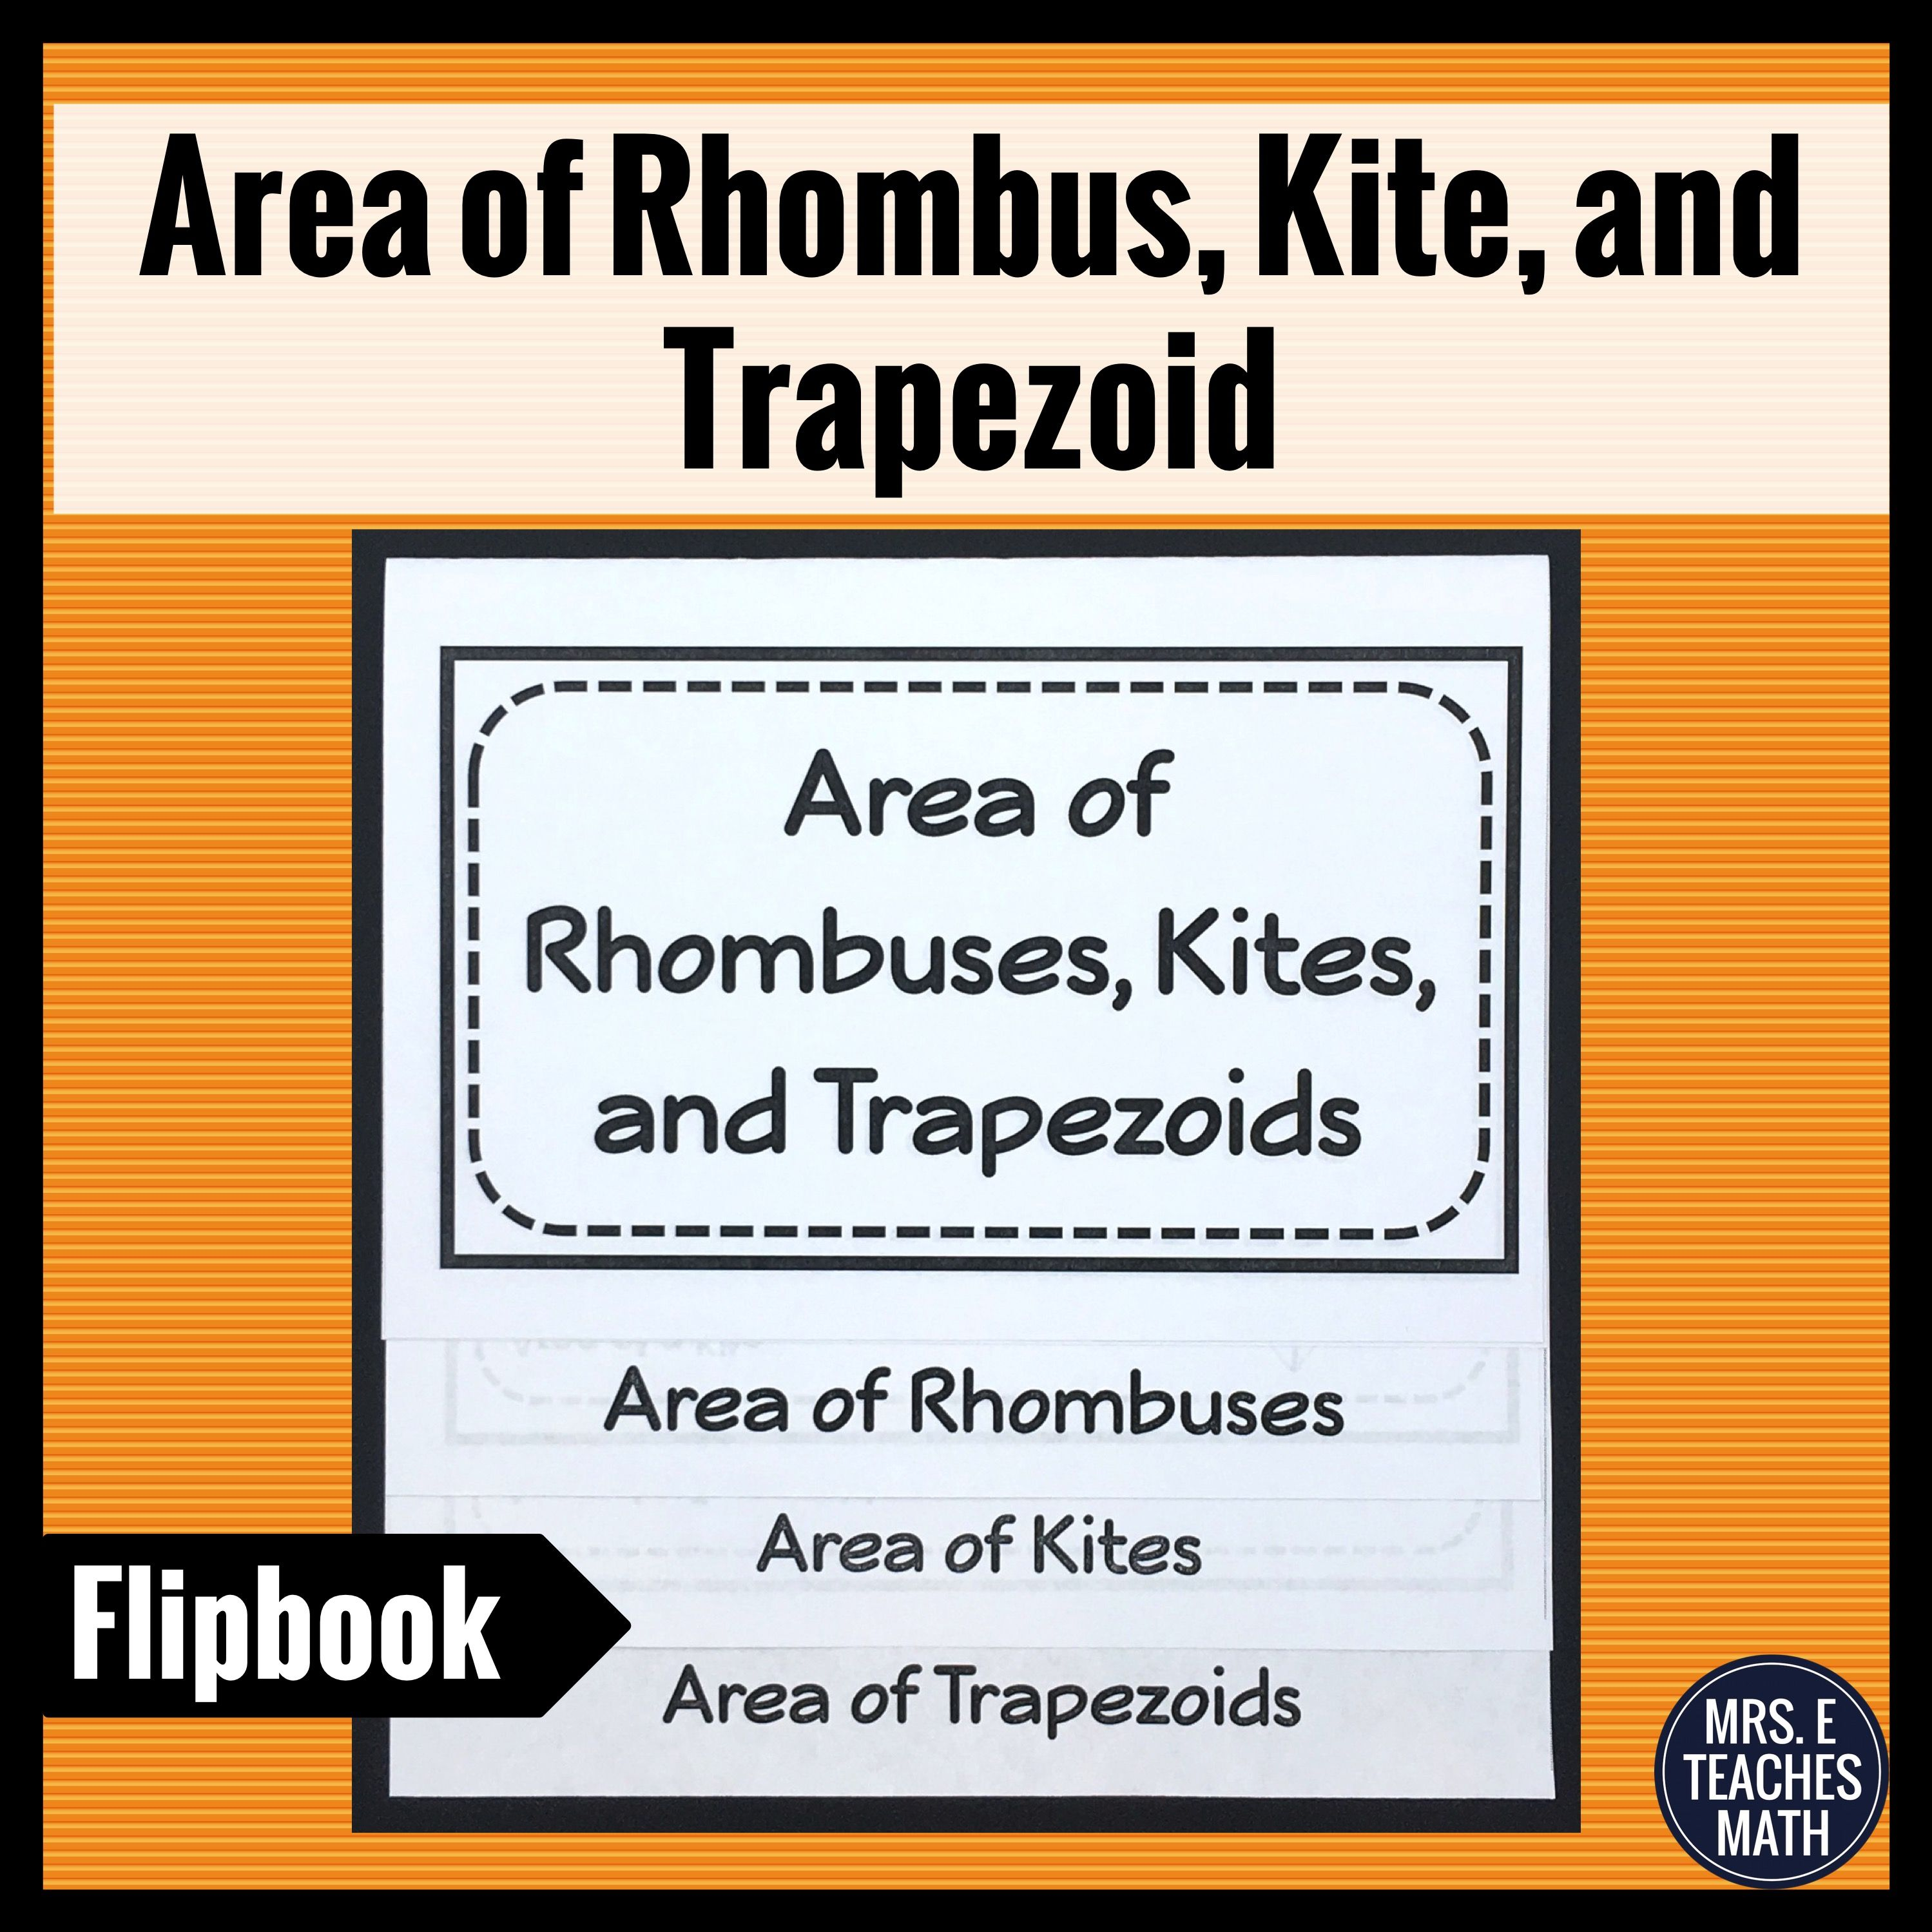 Area Of Rhombuses T Zoids And Kites Flipbook